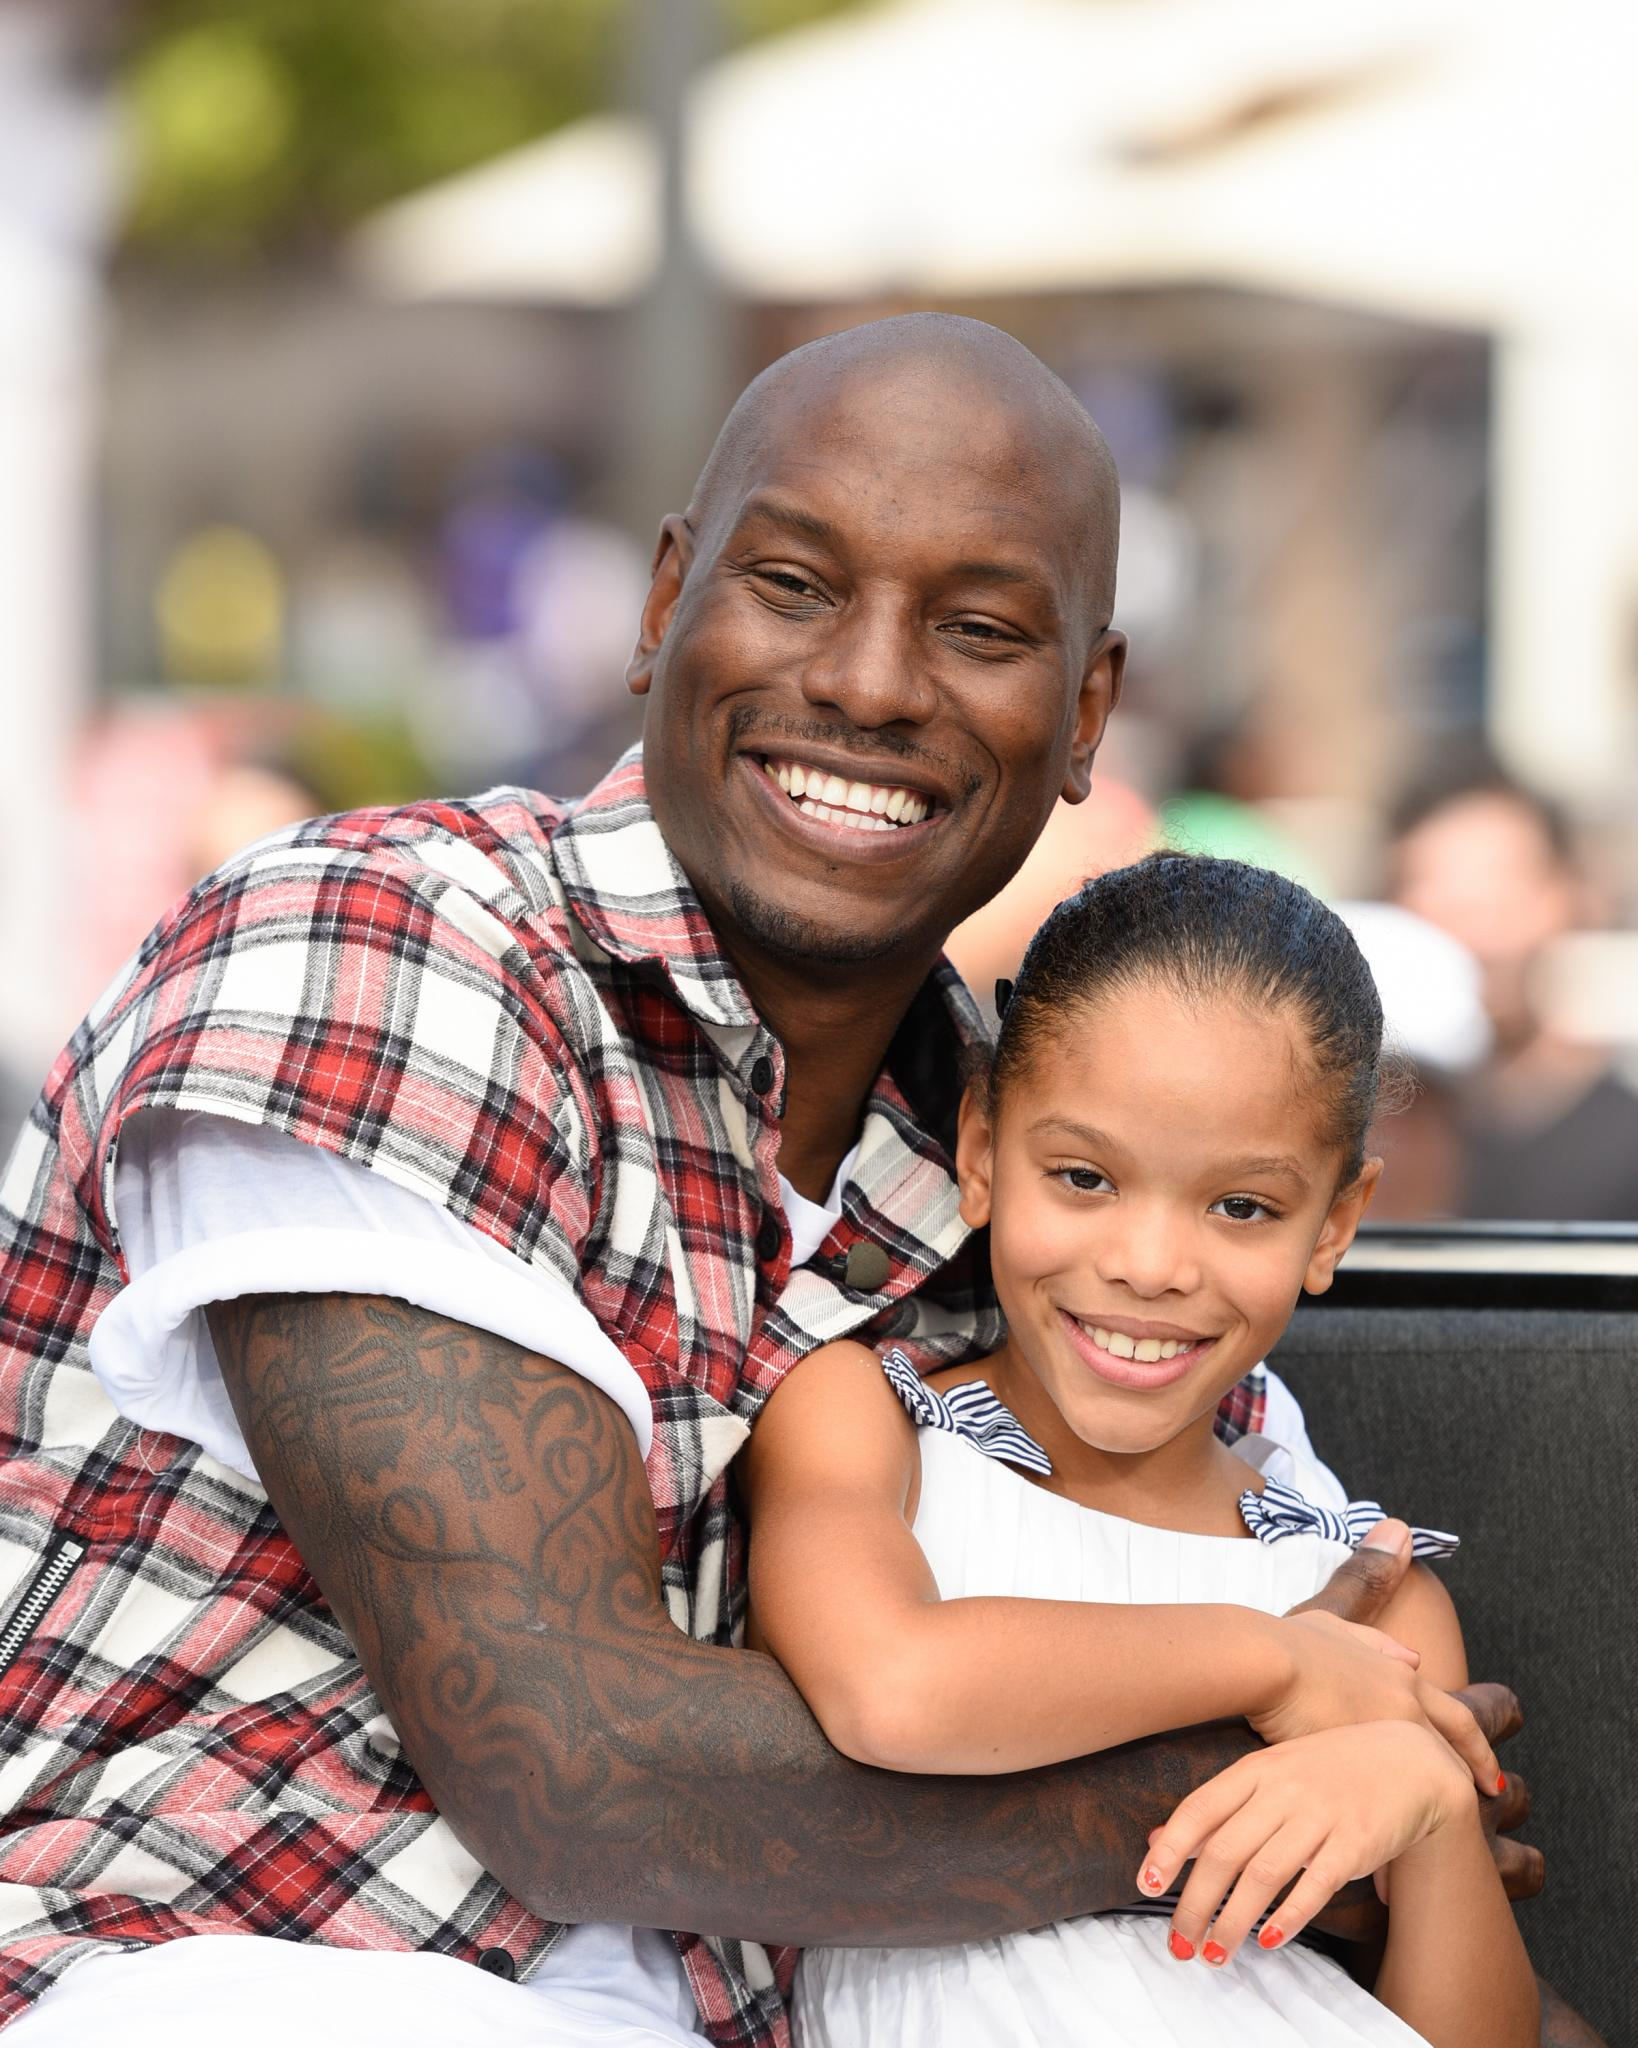 Tyrese Shares Precious Father-Daughter Photo And Message For His 9-Year-Old